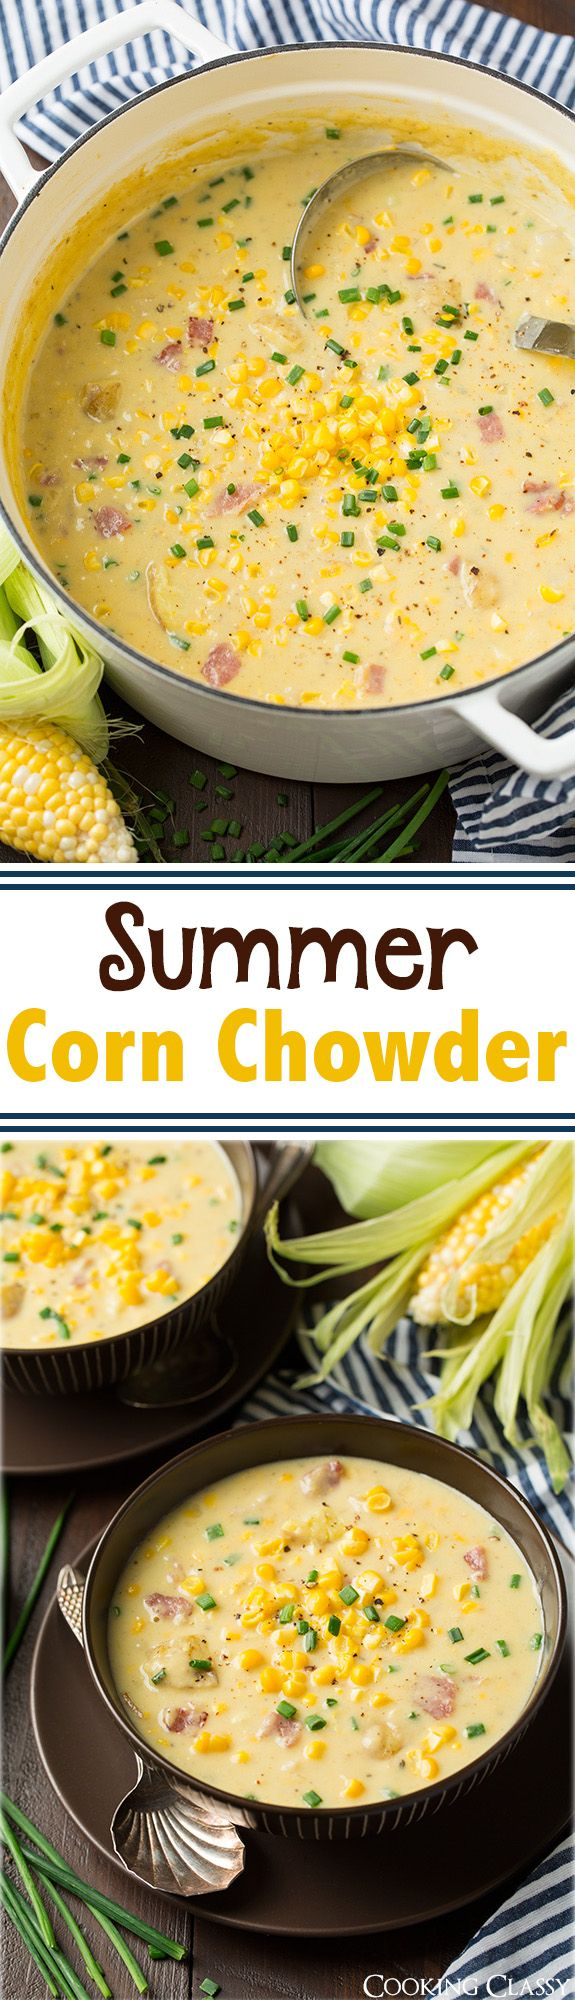 Summer Corn Chowder - this is the perfect summer soup!